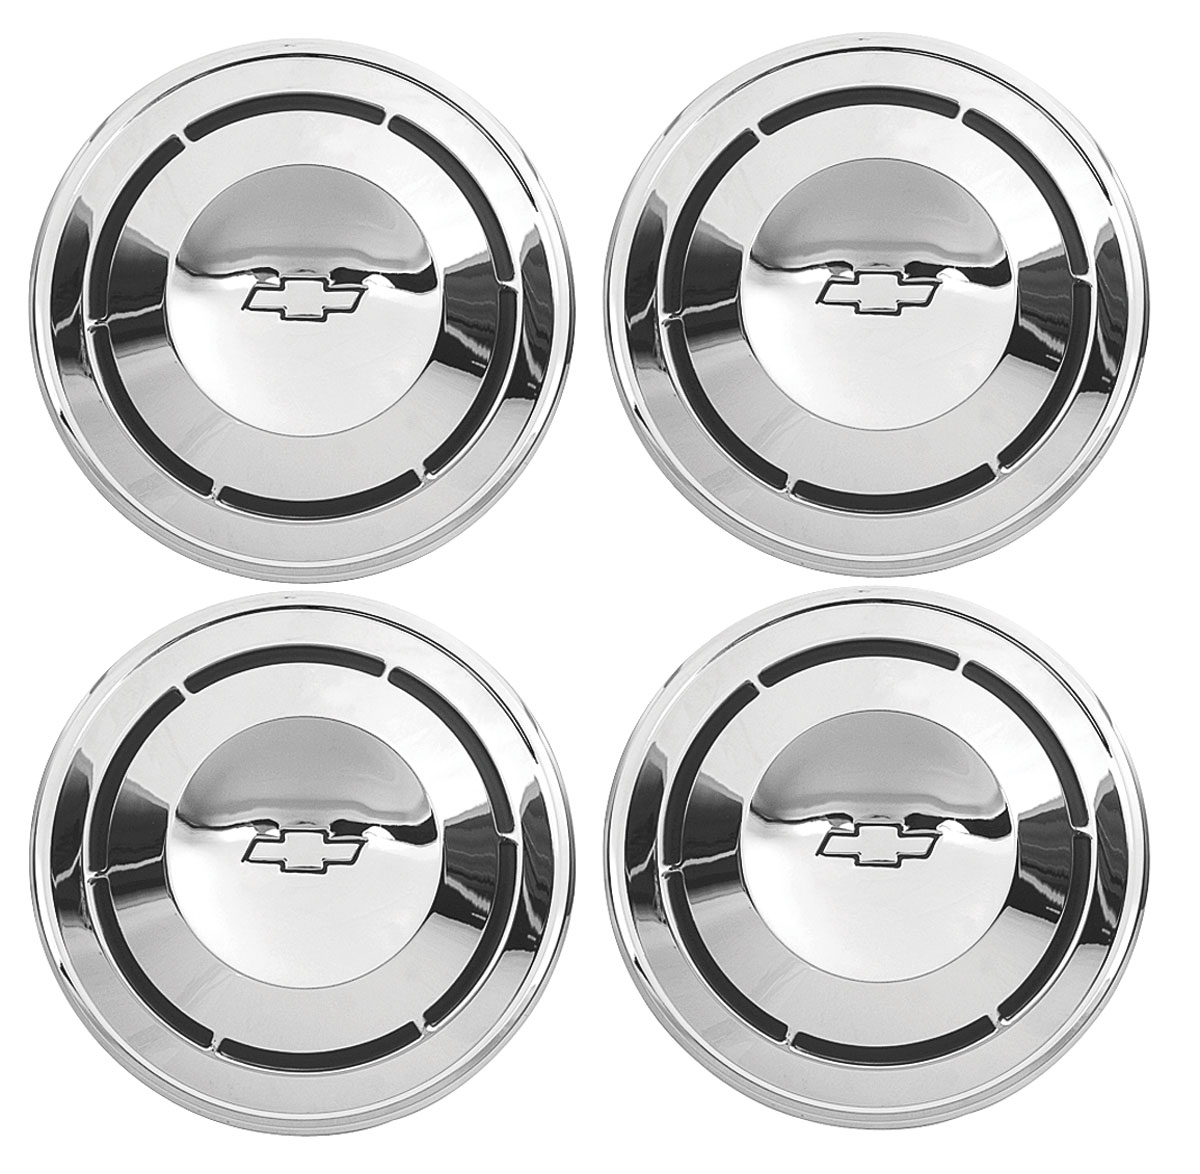 Chevelle Hub Caps Chevrolet Factory Style Fits 1968 70